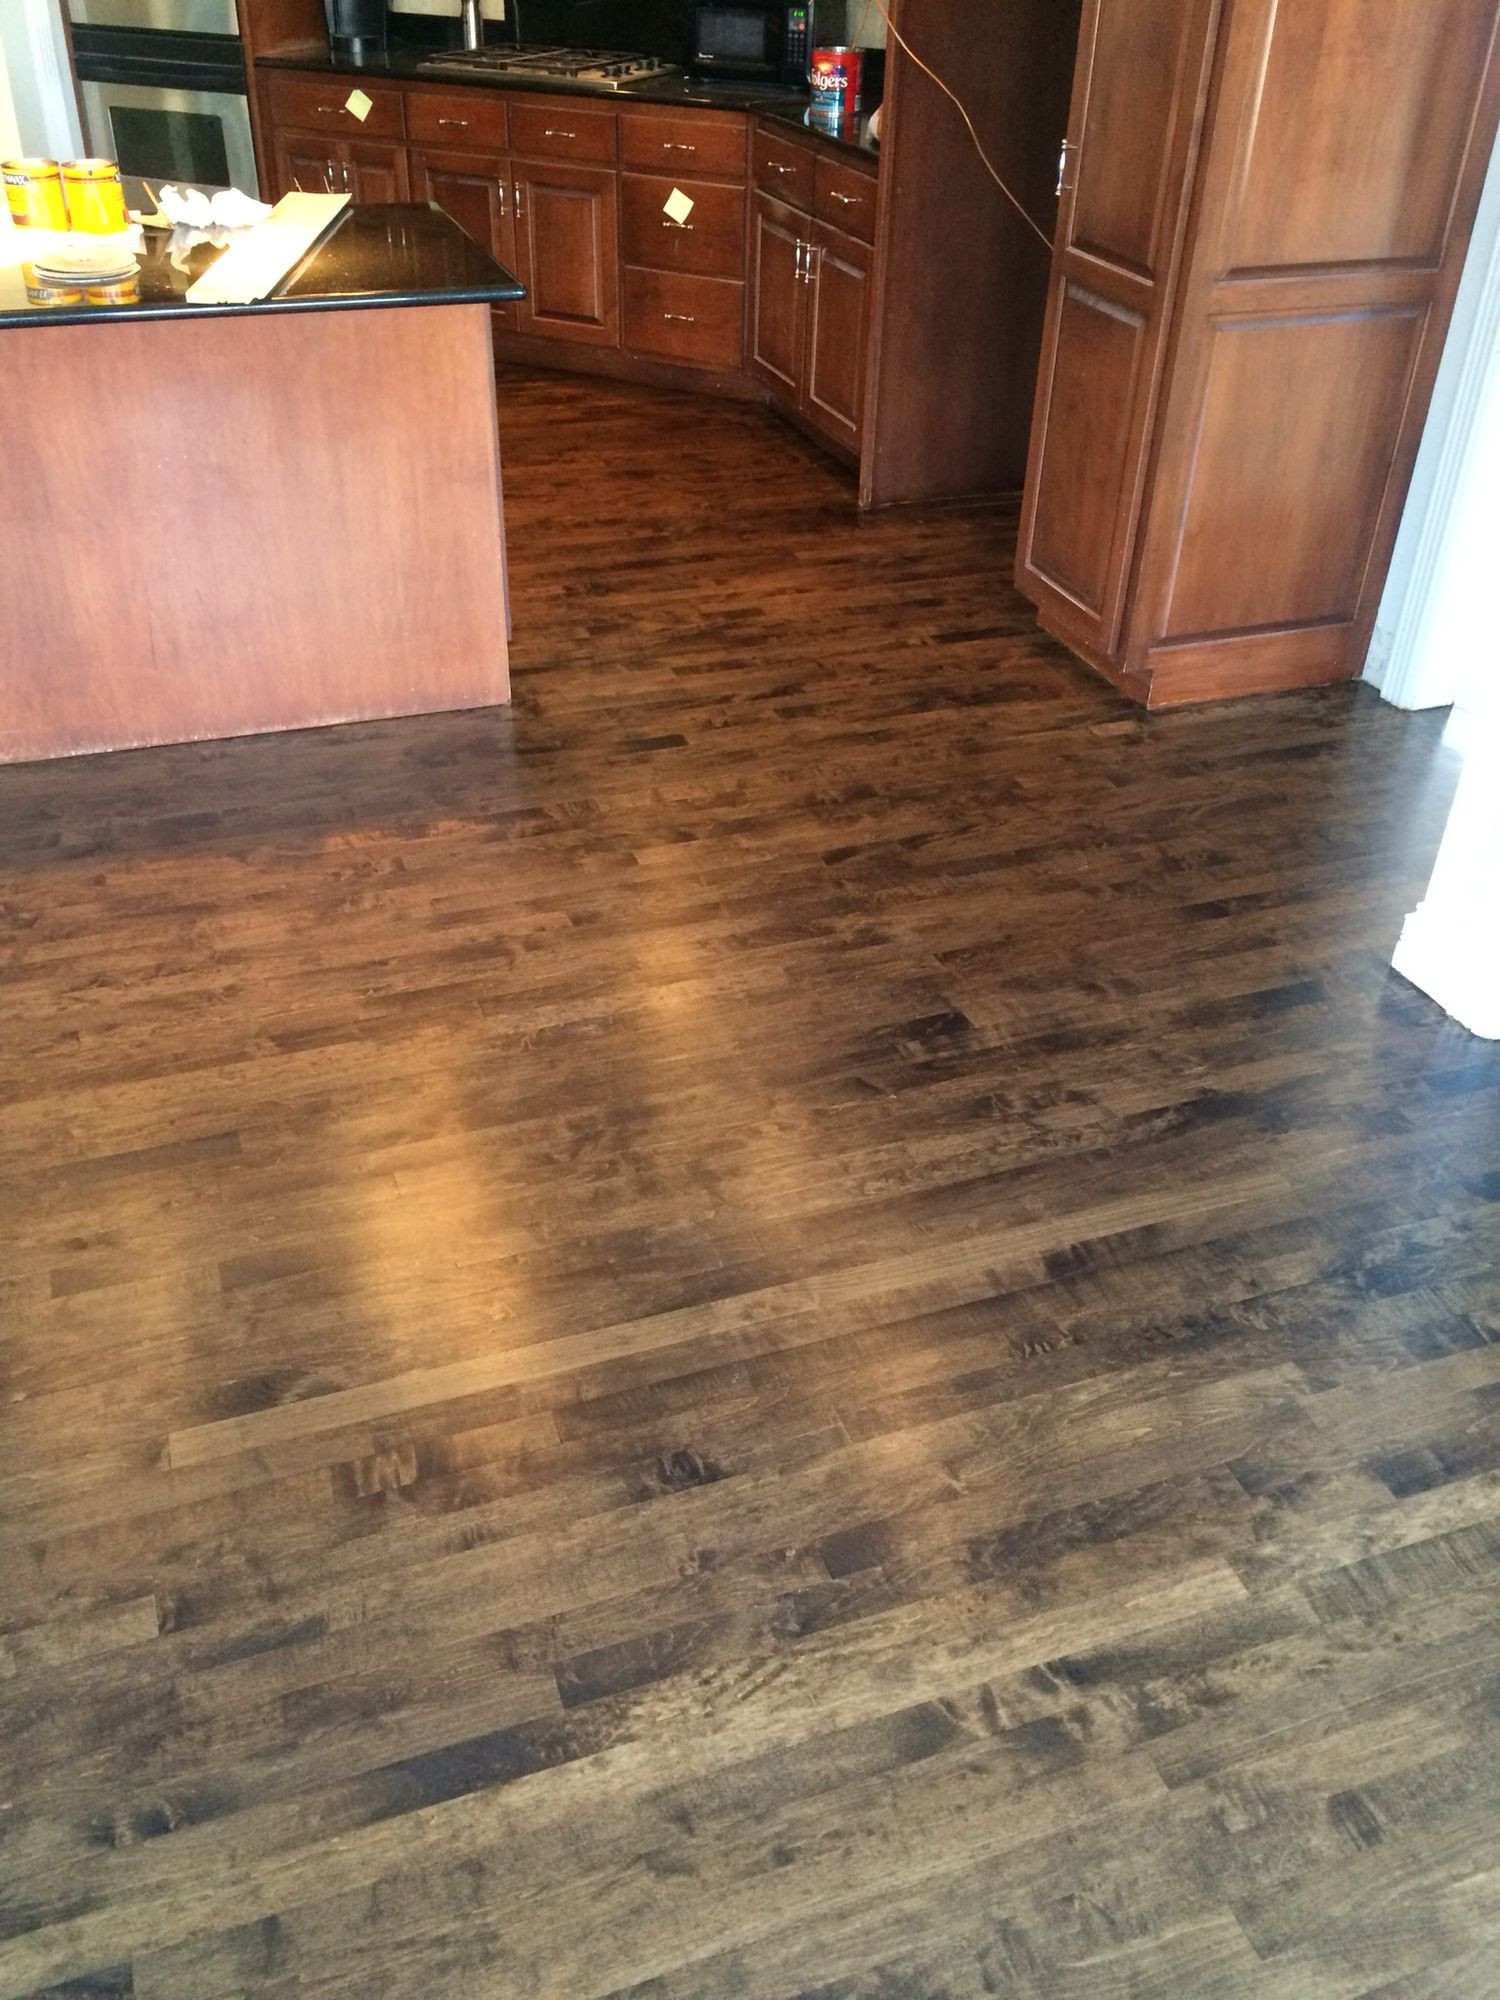 hardwood floor refinishing denver co of wood floor refinishing service adventures in staining my red oak regarding hardwood floors products process wood floor refinishing service maple stained dark walnut